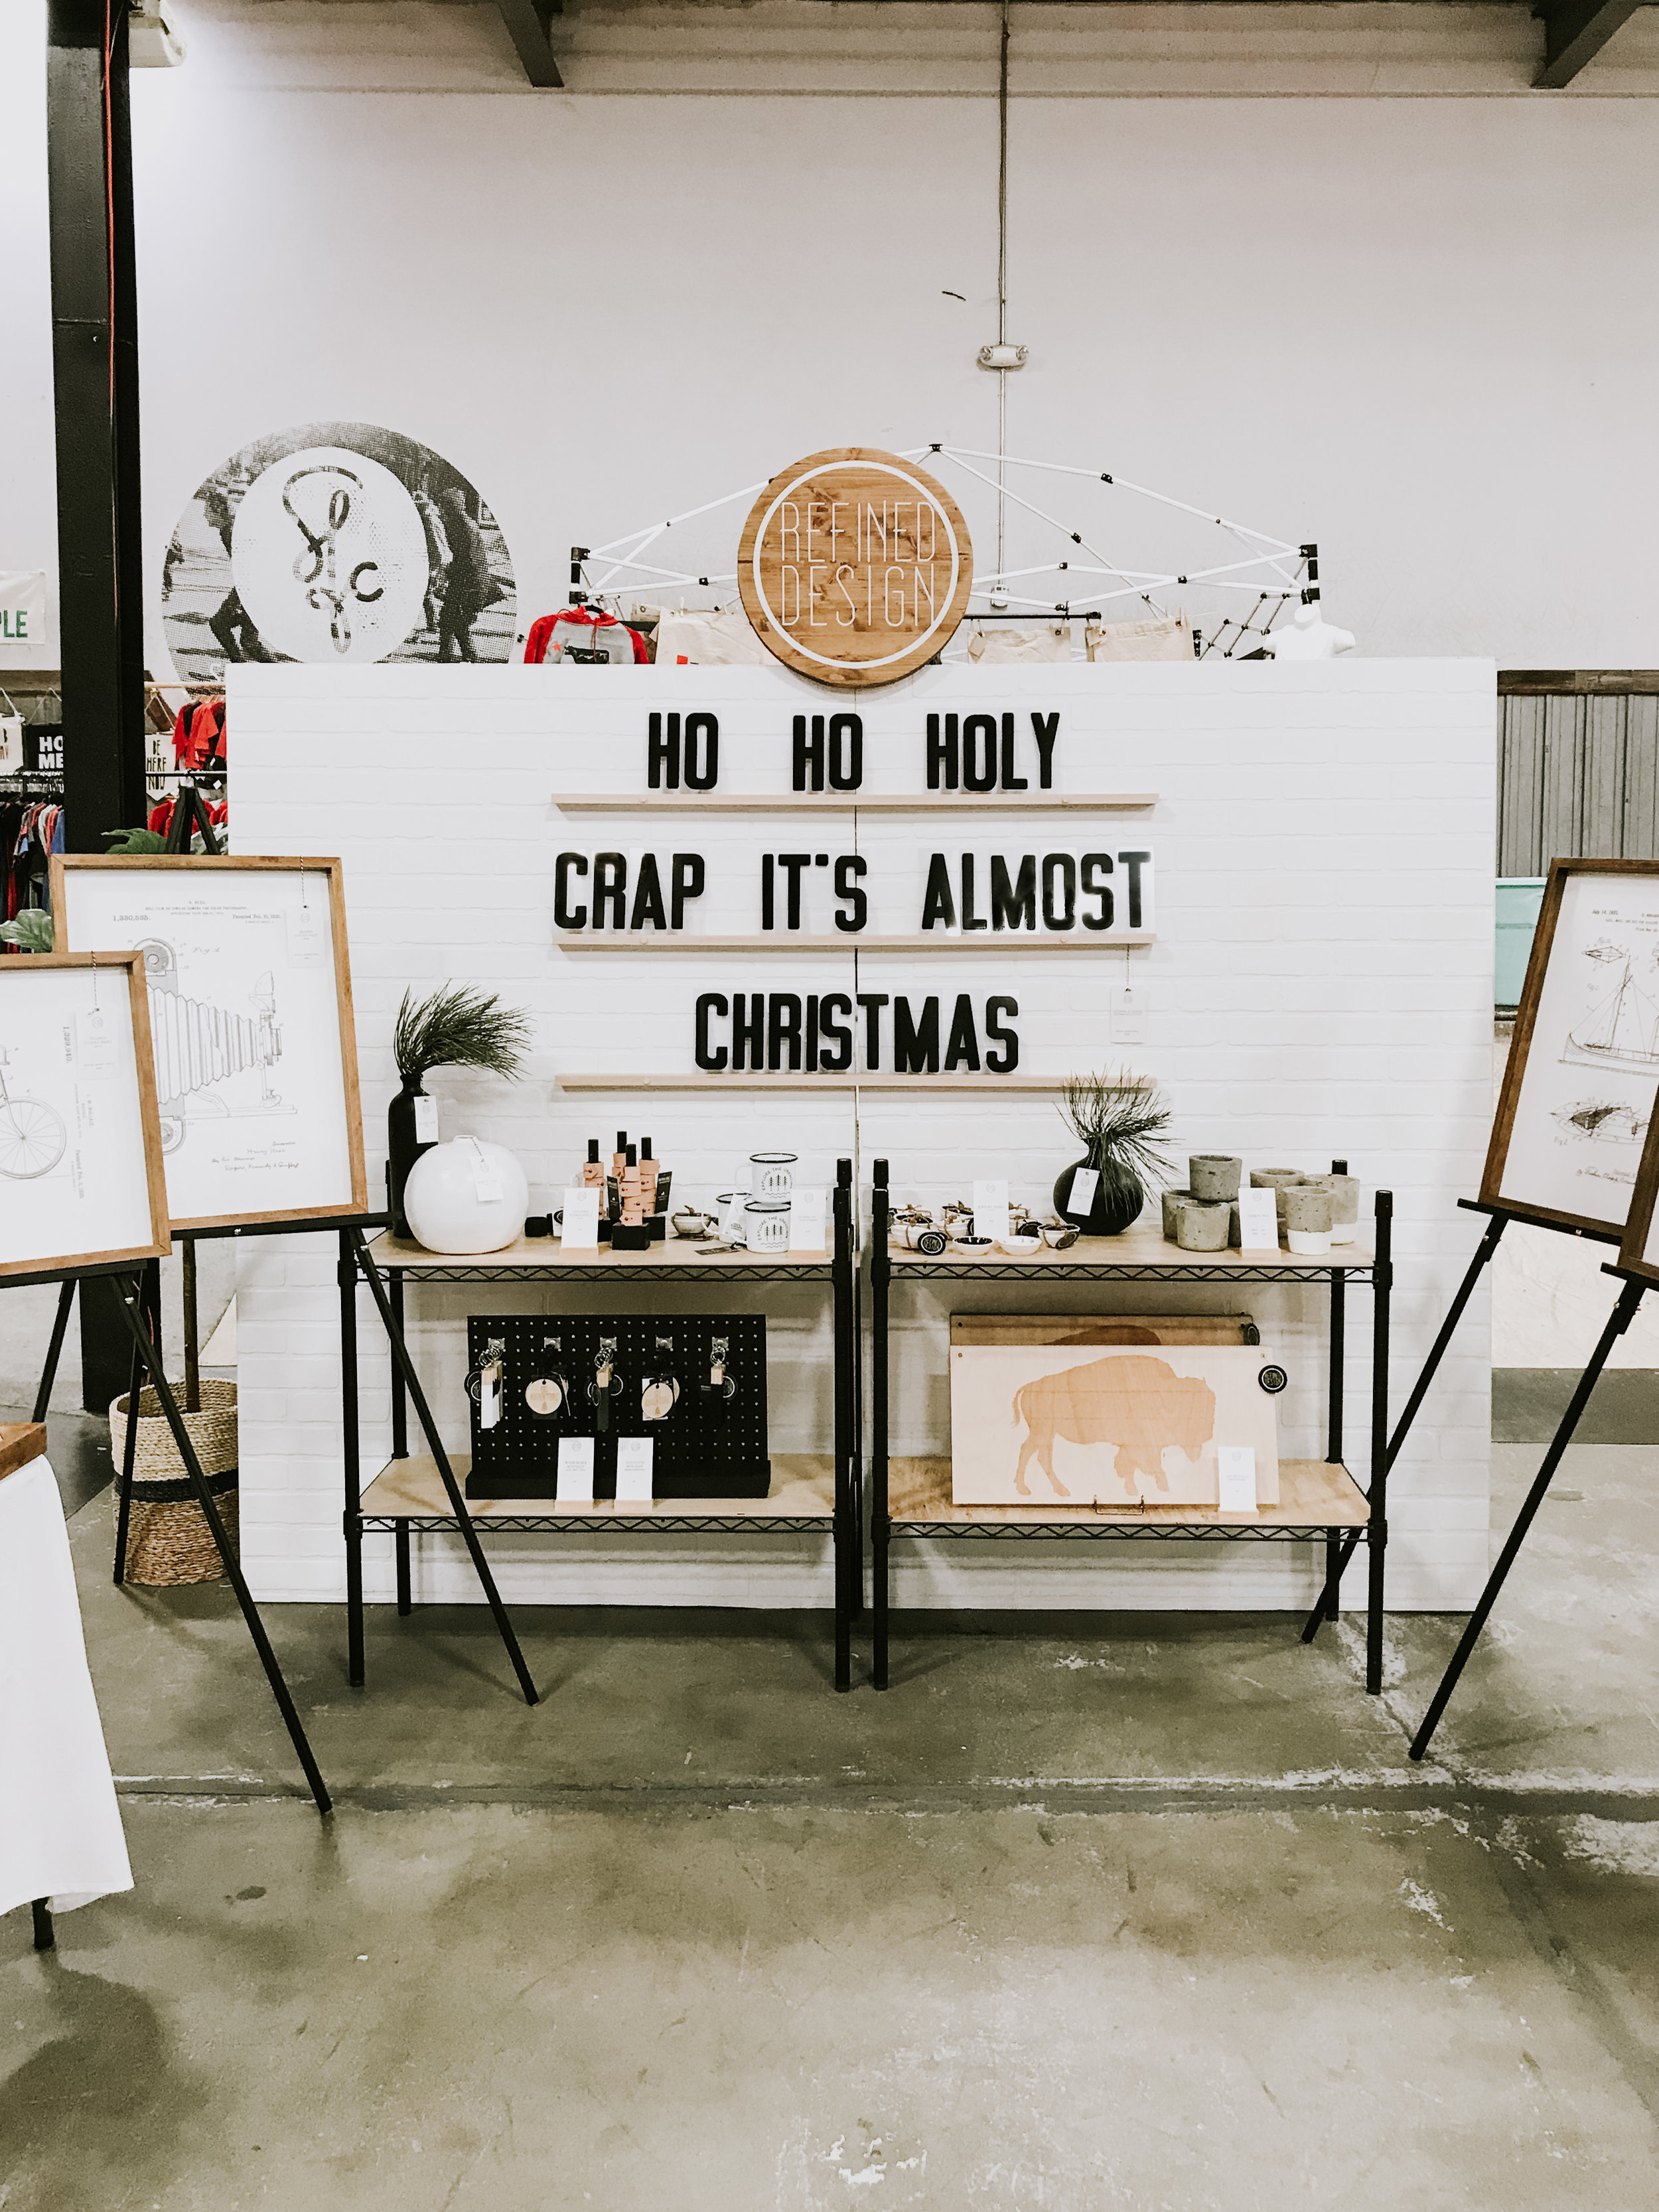 2018 in Review - What happened in our lives in 2018 - the behind the scenes of Refined Design - Love the Locals holiday show